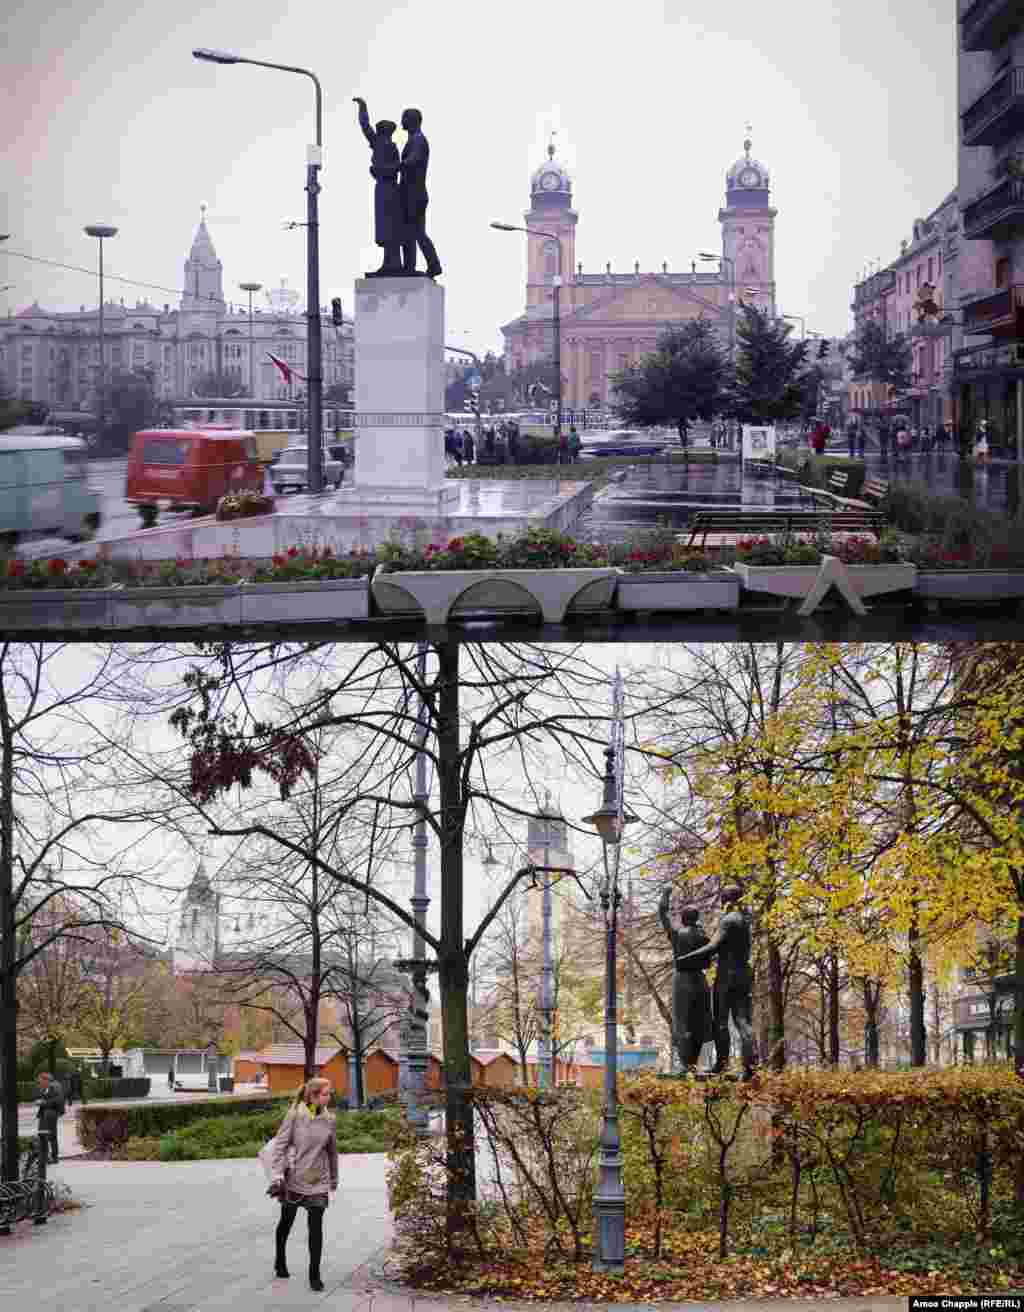 Debrecen 1972-2019 A memorial to Soviet soldiers that once towered over a central square in the eastern city of Debrecen (top). The monument originally featured the names of dead Red Army soldiers beneath a young family welcoming the Soviet Army into Hungary during World War II. In 1993, the monument (on right in 2019 photo) was moved a few meters back from its central location, cut to a stumpier height, and the names of dead Red Army soldiers were removed. 1972 photo: Fortepan/Inkey Tibor